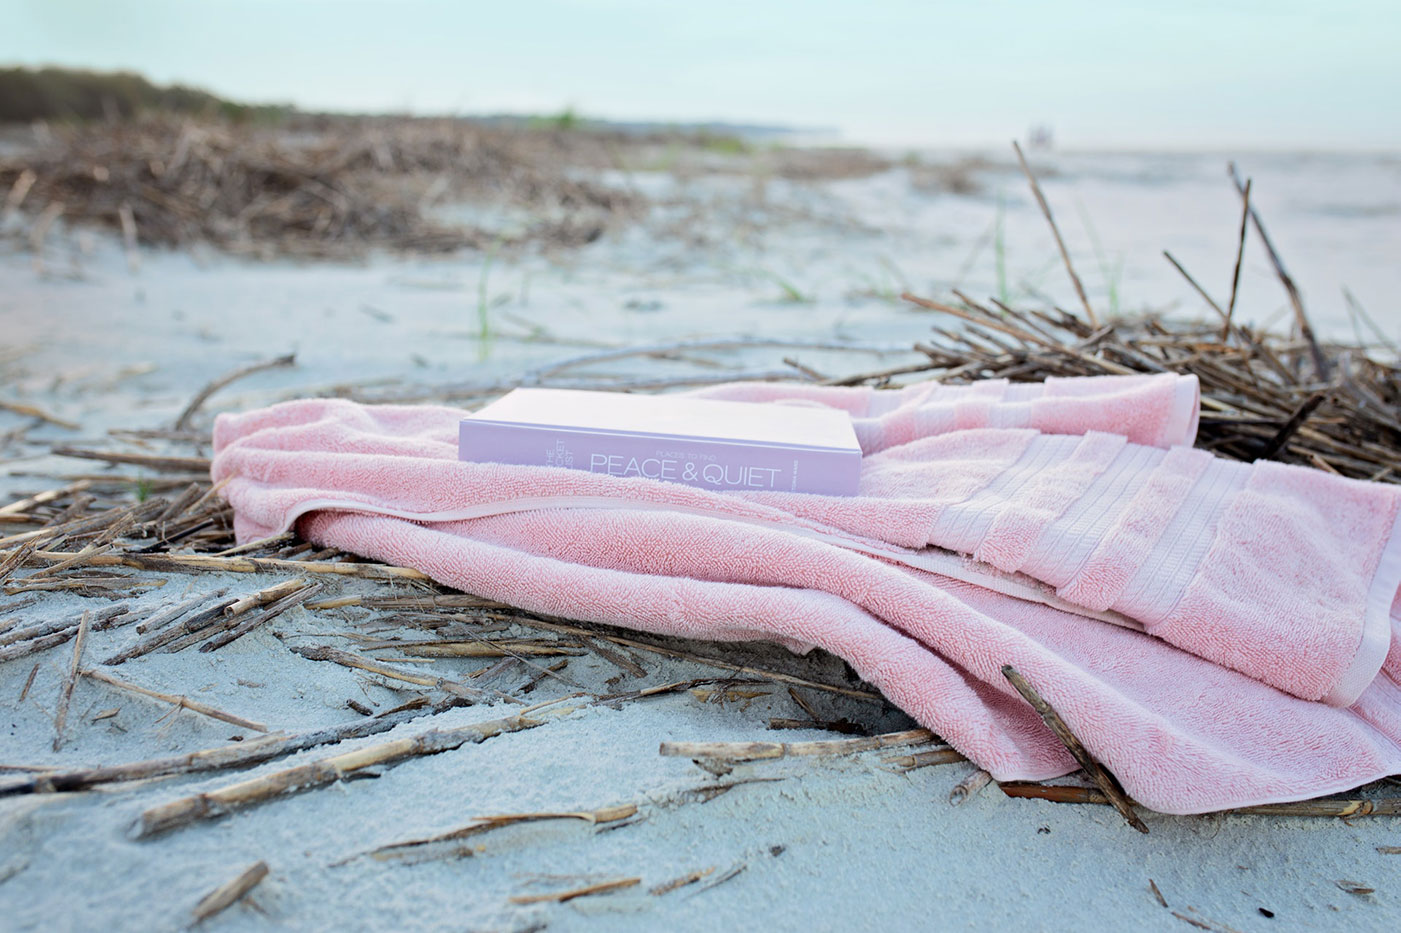 a beach towel on the beach